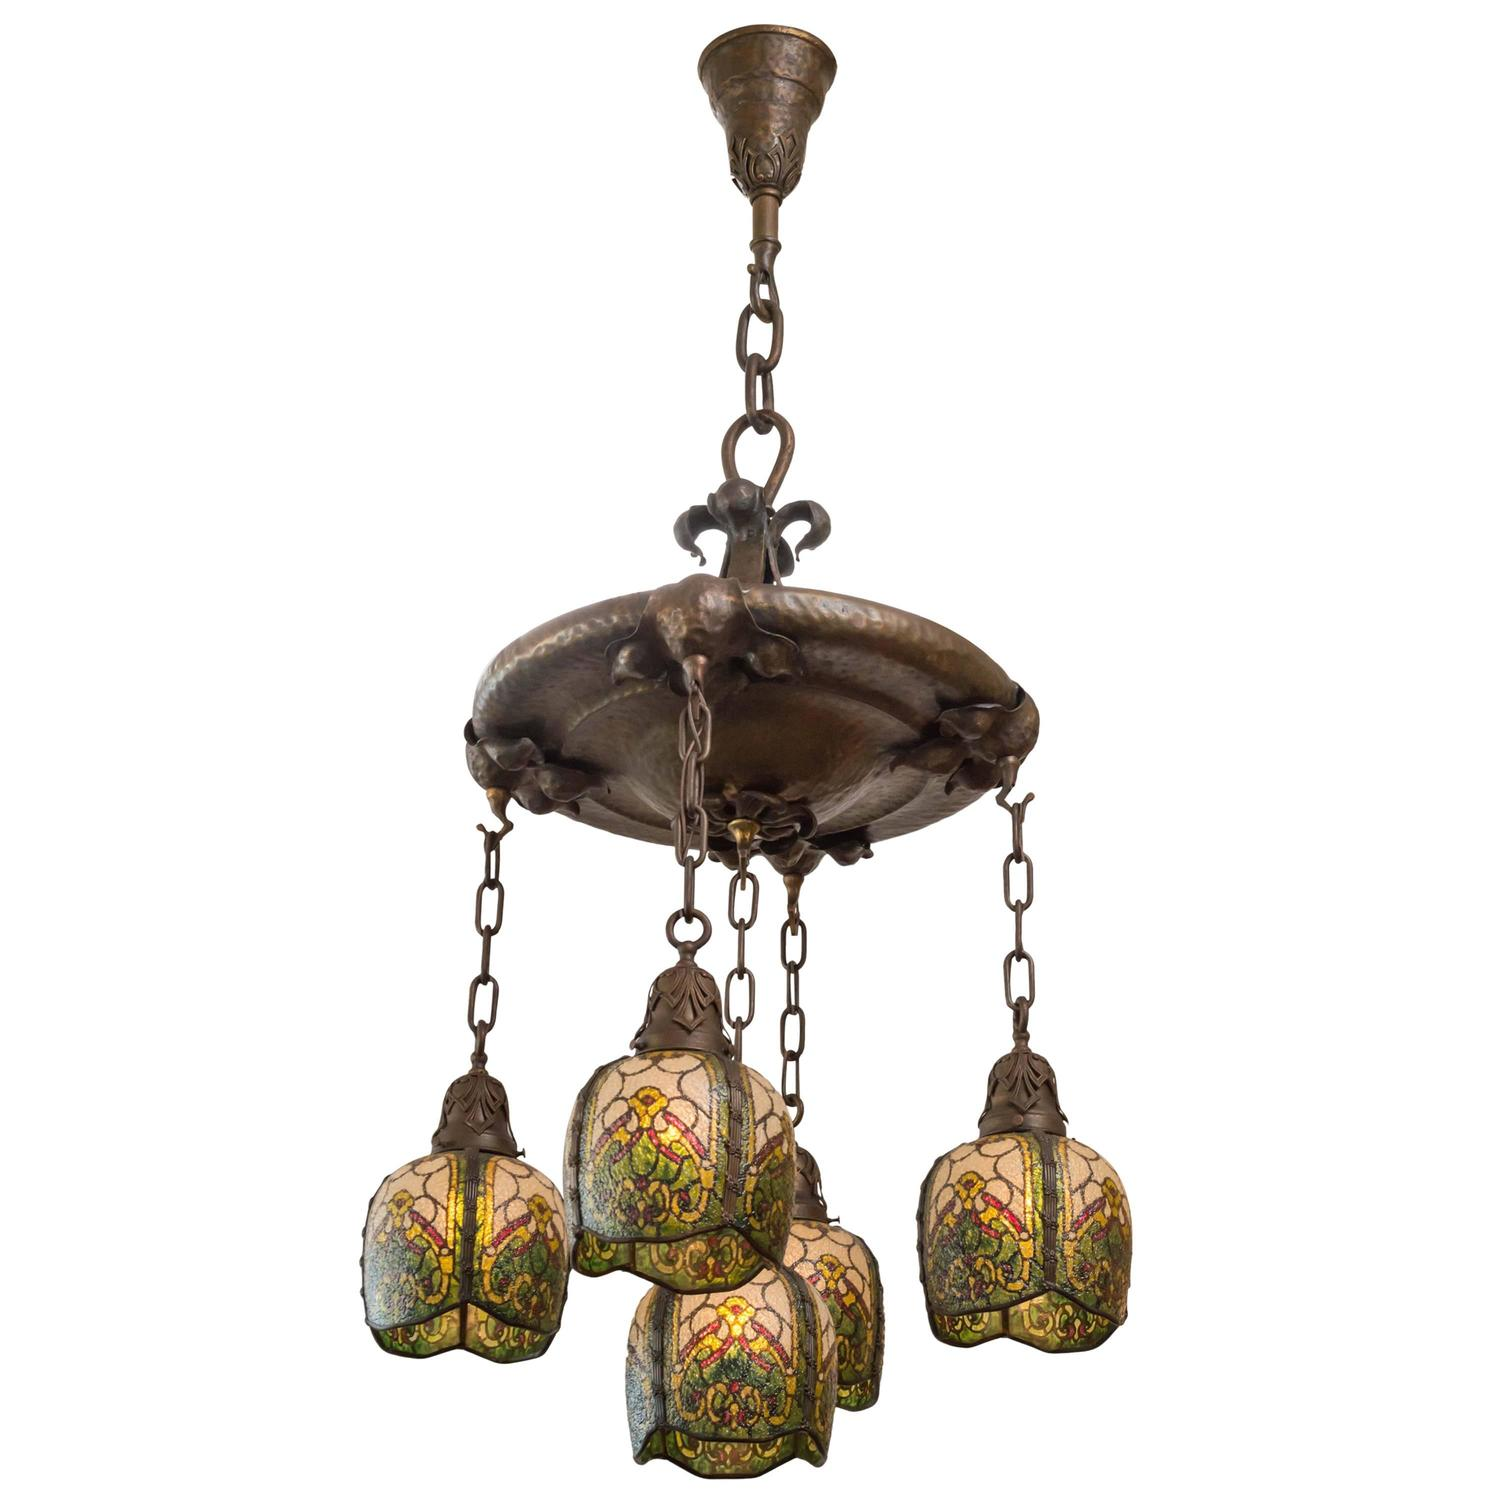 Five Arm Arts and Crafts Chandelier by the John Morgan